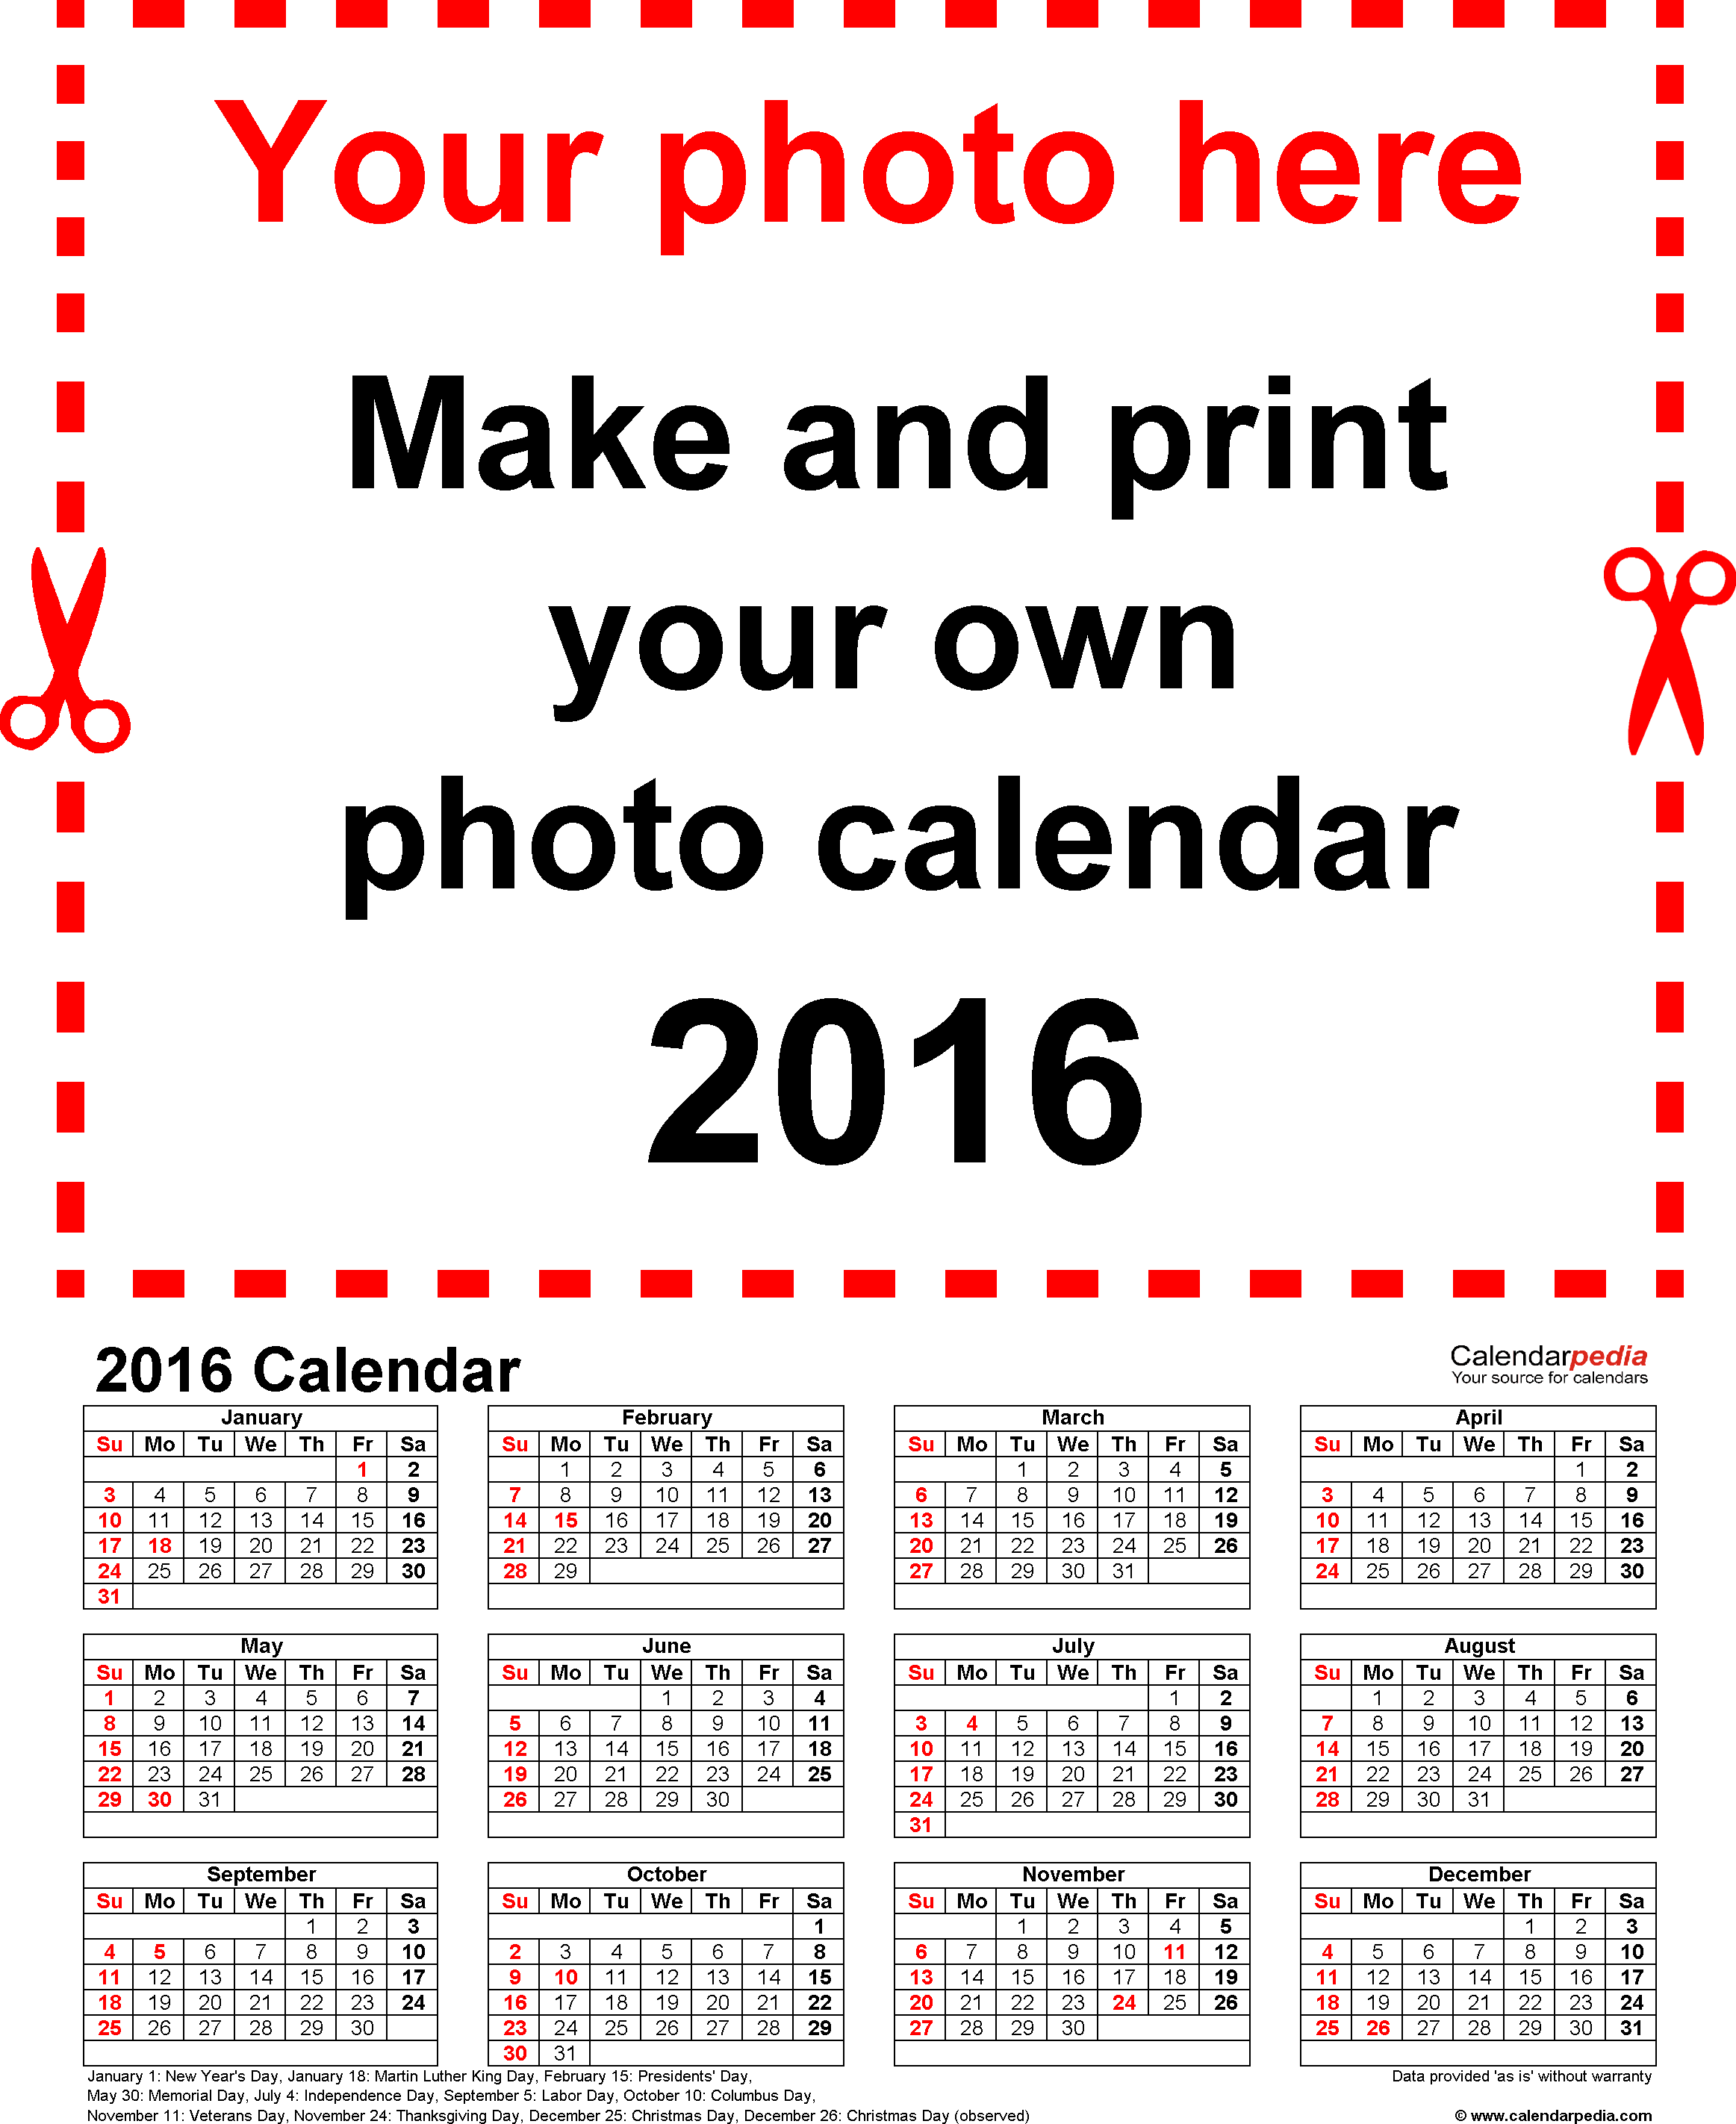 Template 4: Photo calendar 2016 for Excel, portrait format, whole year on one page